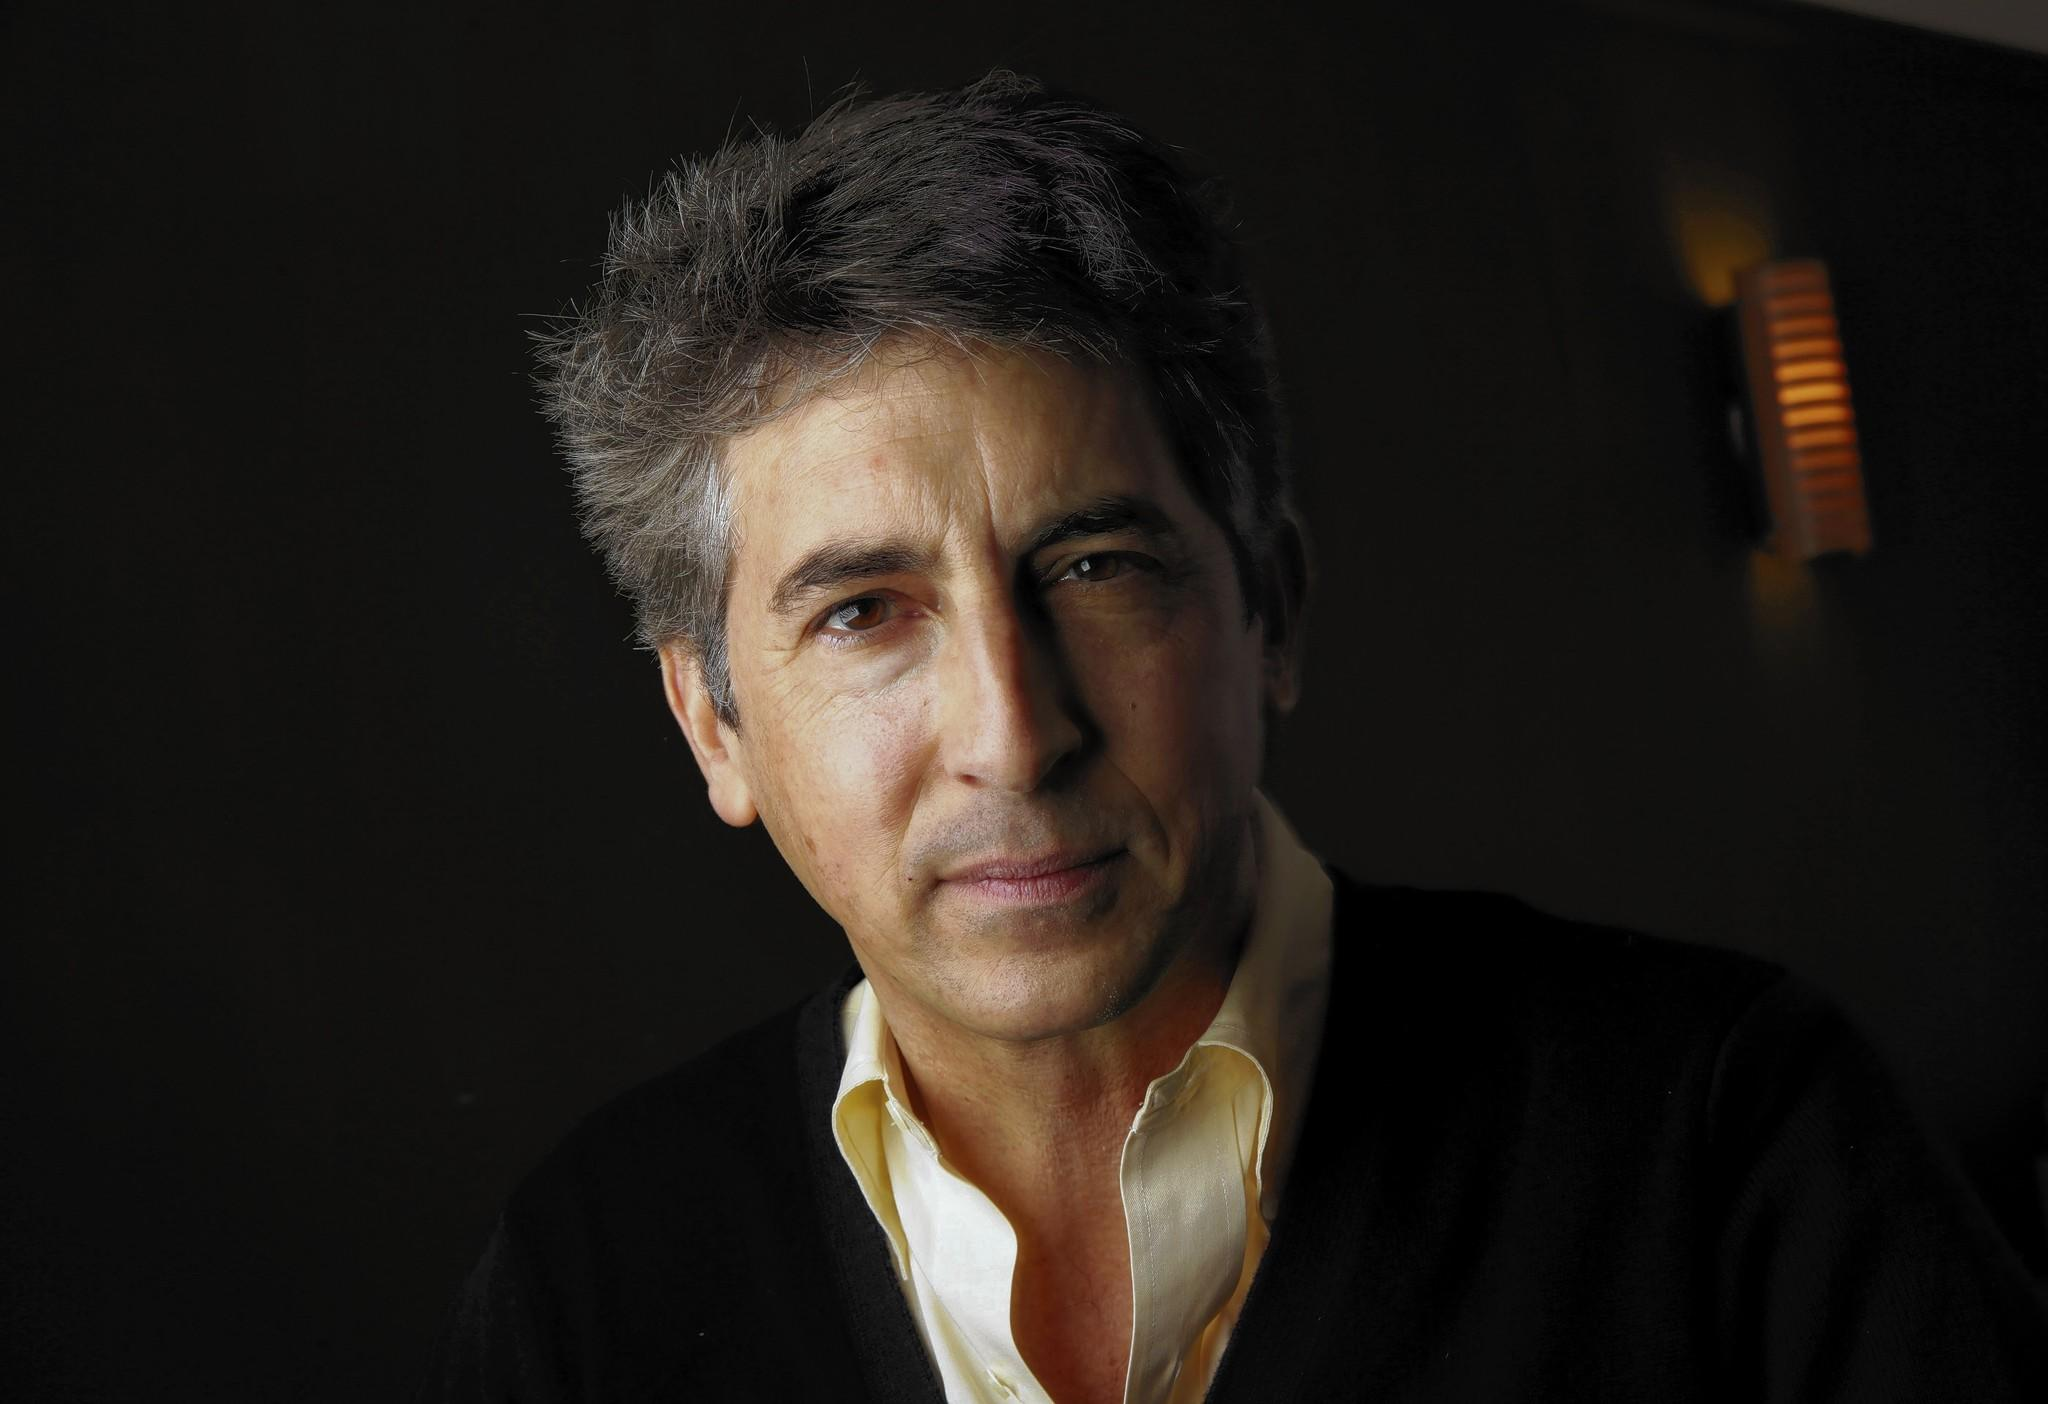 Director Alexander Payne grew up in Nebraska.